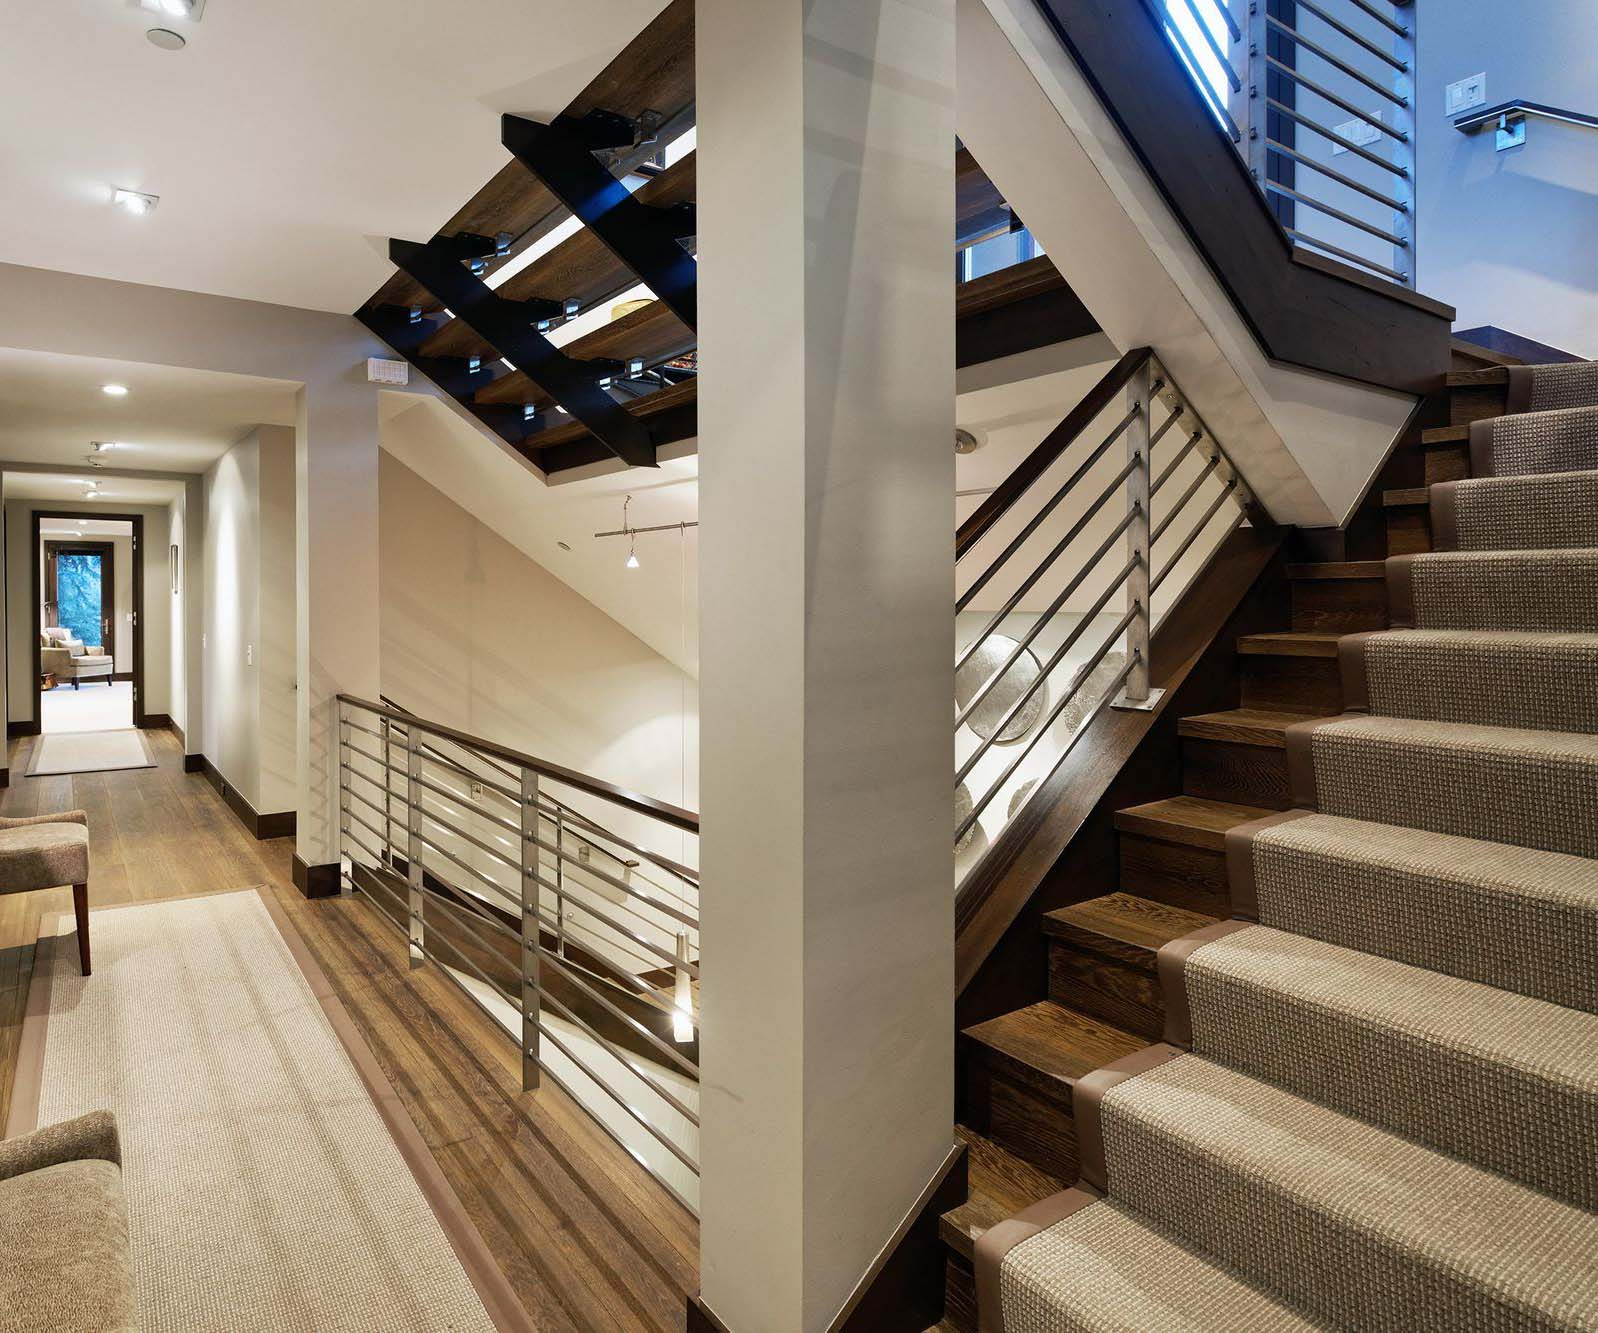 Modern wooden staircase. Dark hardwood floors with open risers and stair runner.